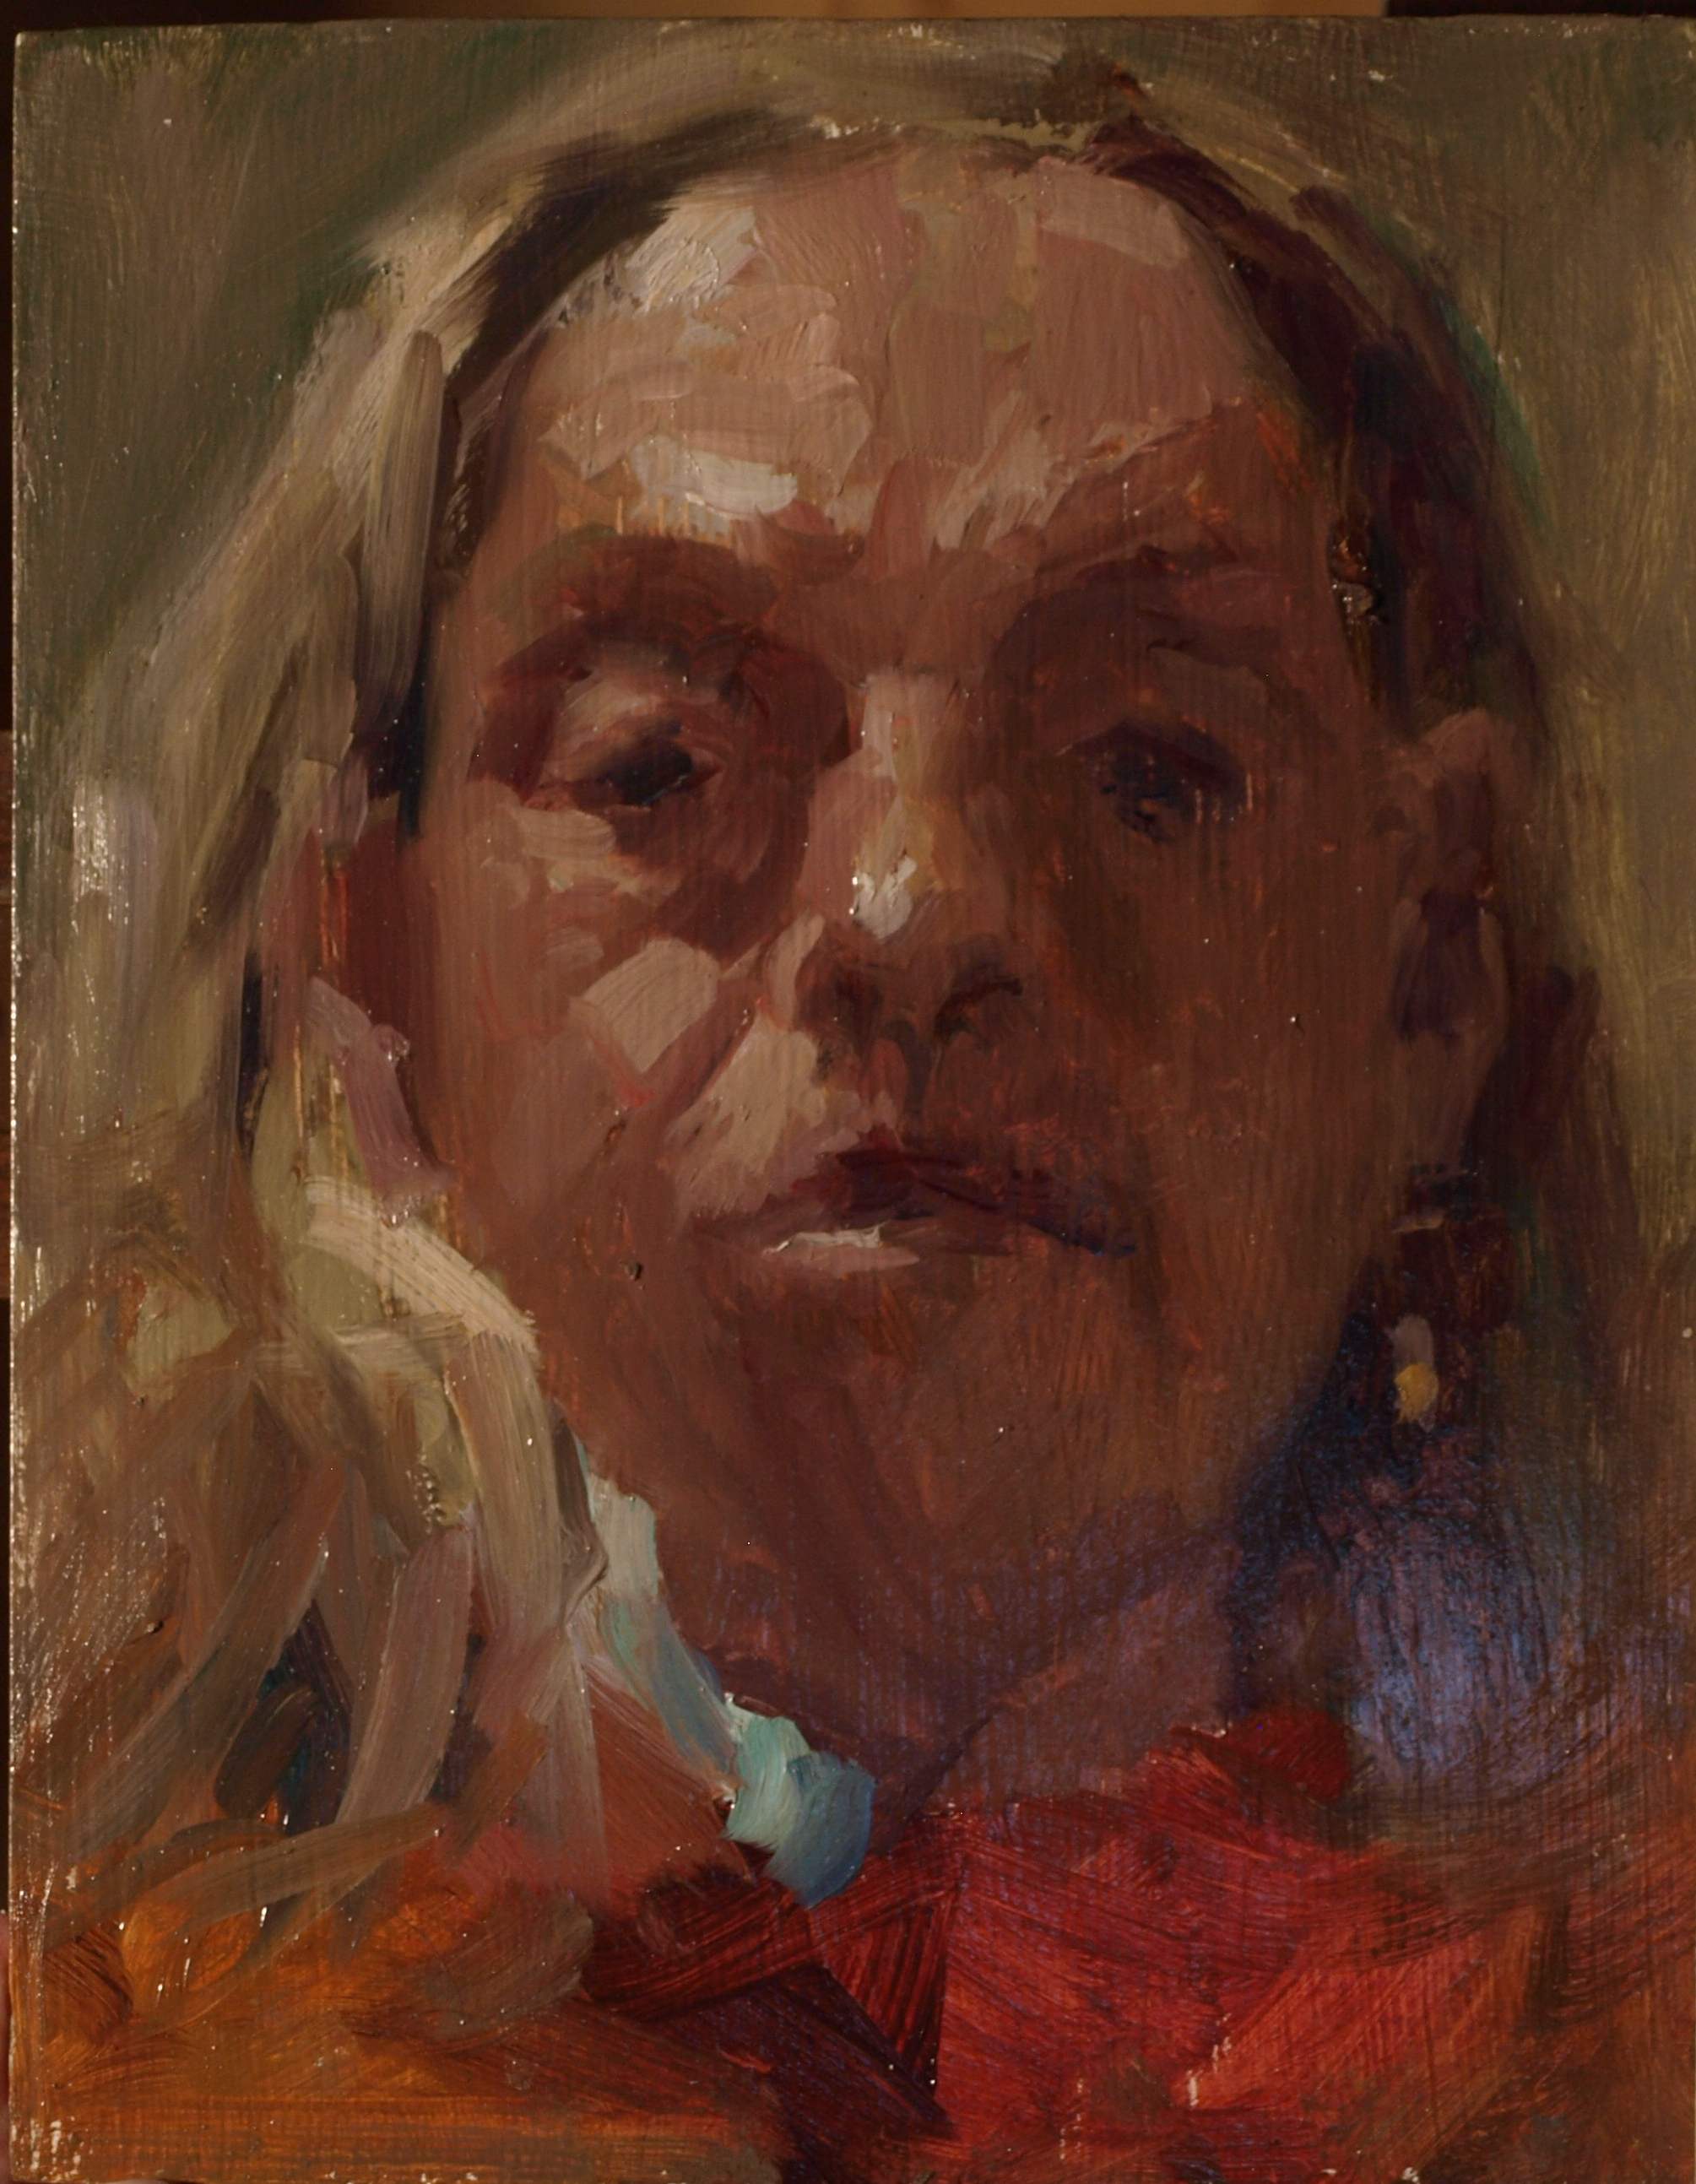 Mirror Study, Oil on Panel, 10 x 8 Inches, by Susan Grisell, $150